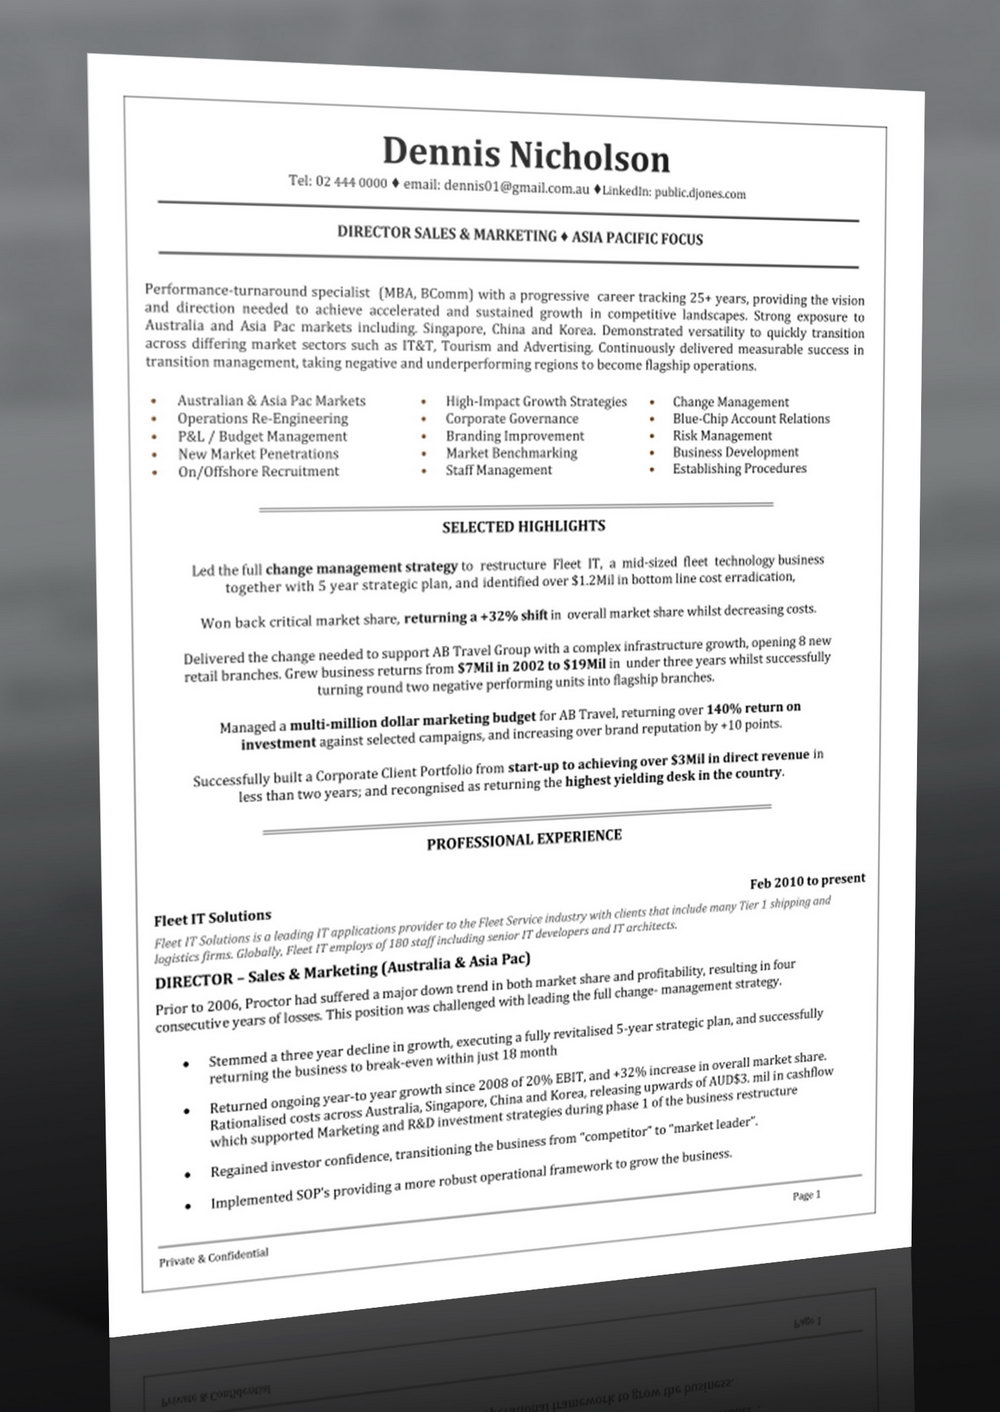 Professional Resume Writing Services Richmond Va